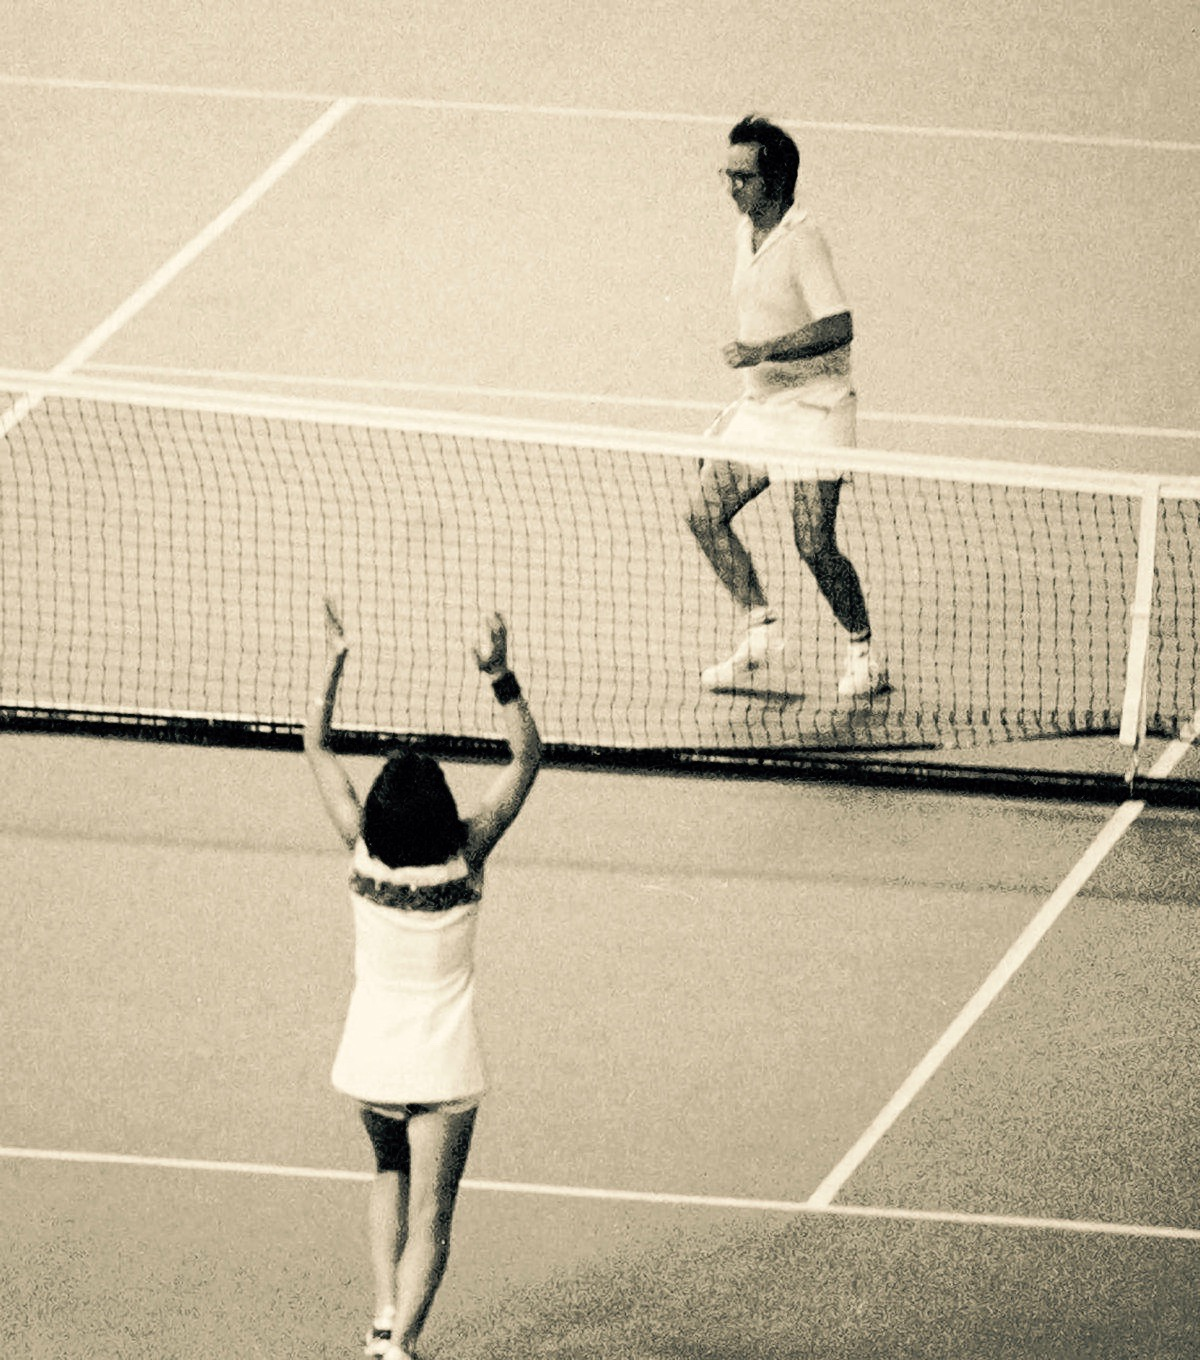 September 20 – In 1973, Billie Jean King defeated Bobby Riggs in straight sets…